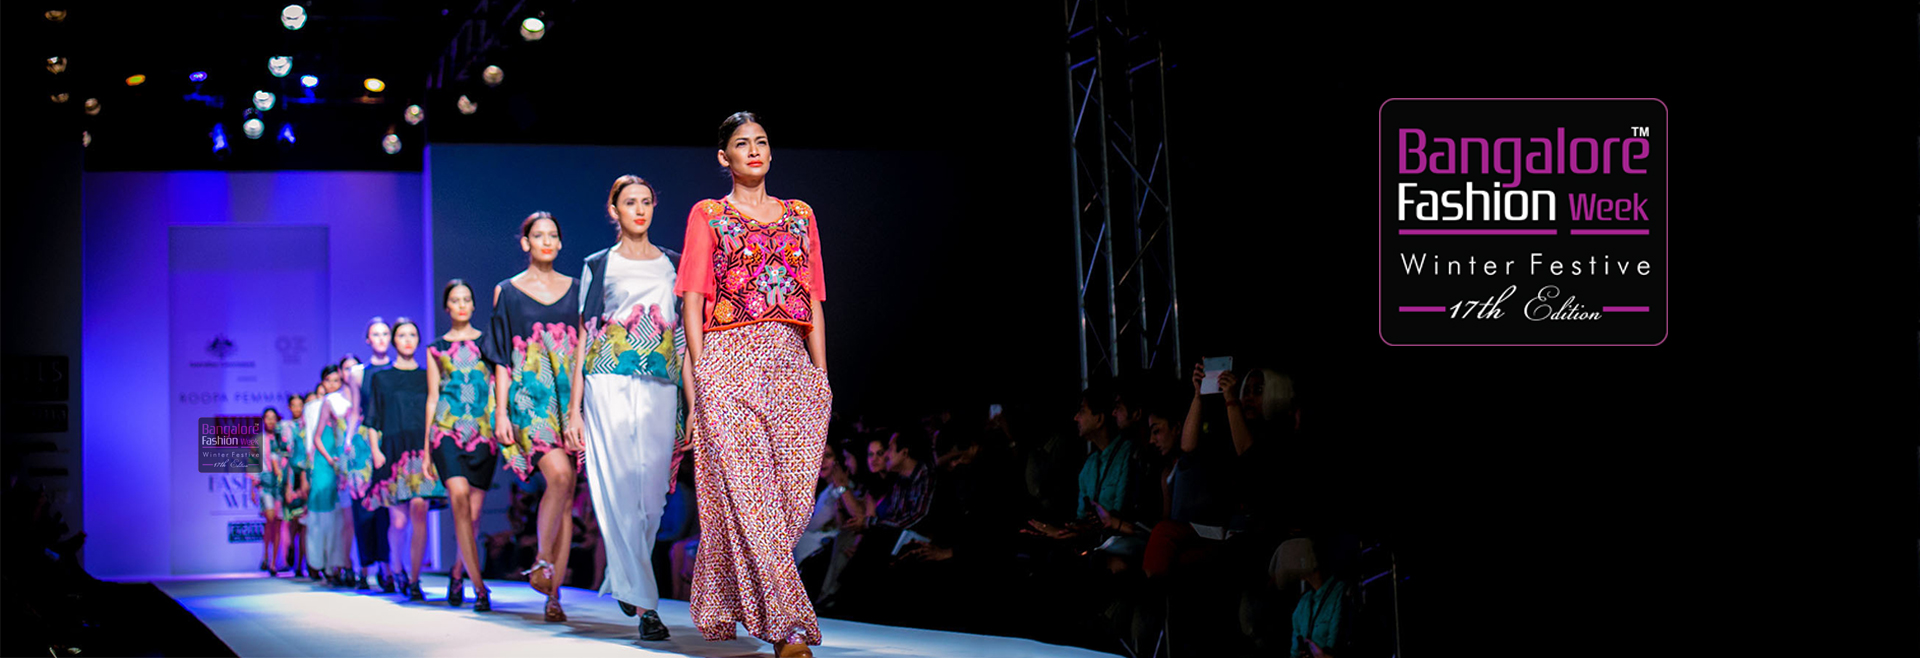 Bangalore Fashion Week 2017